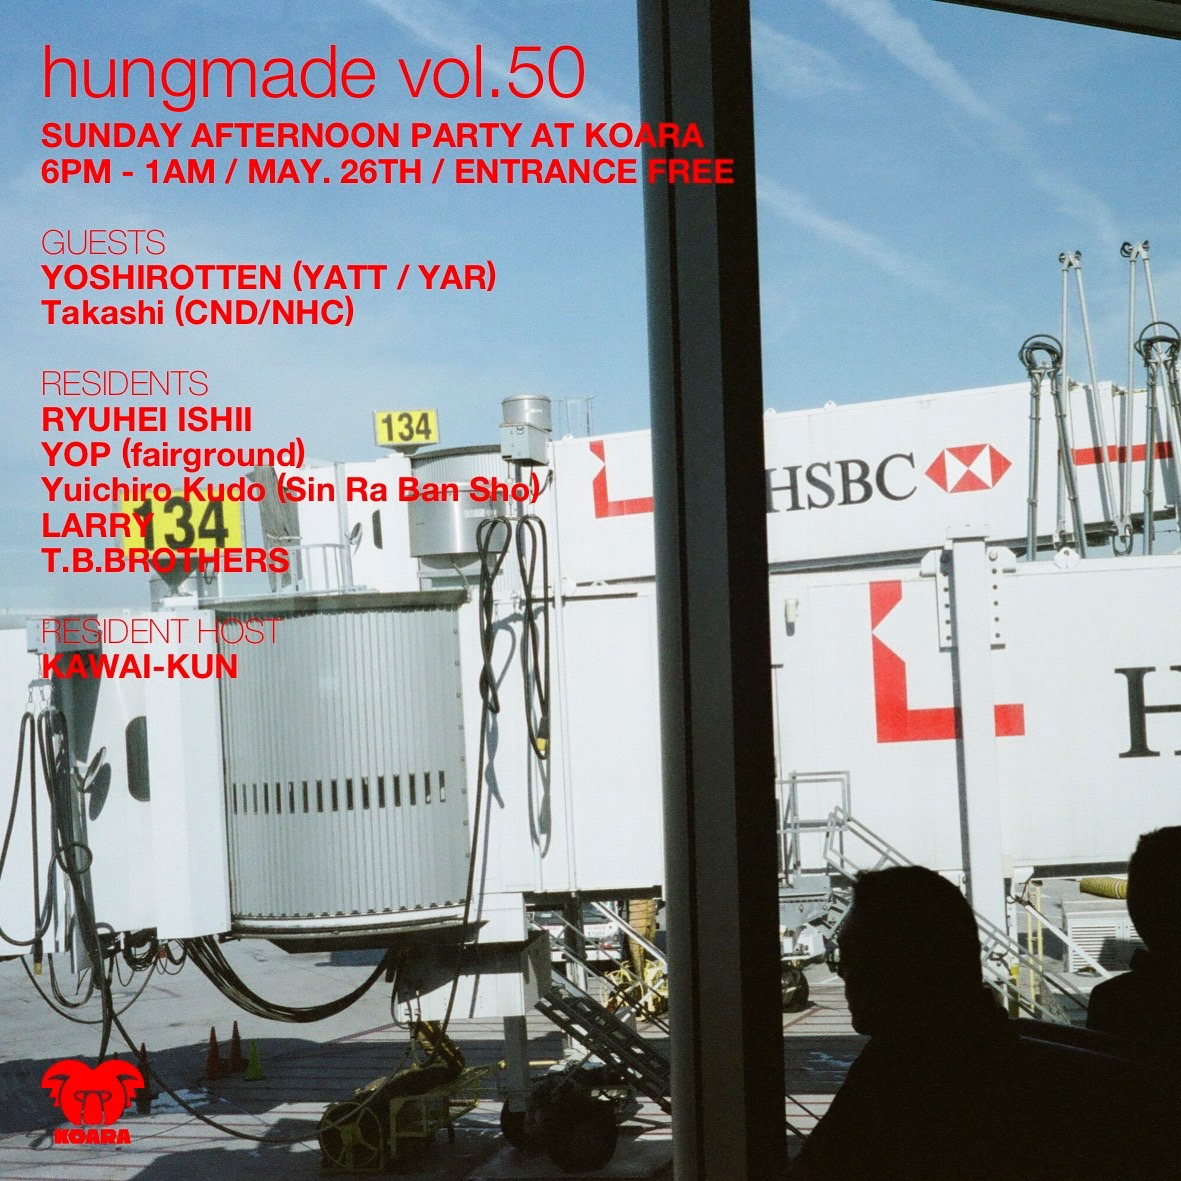 hungmade vol.50